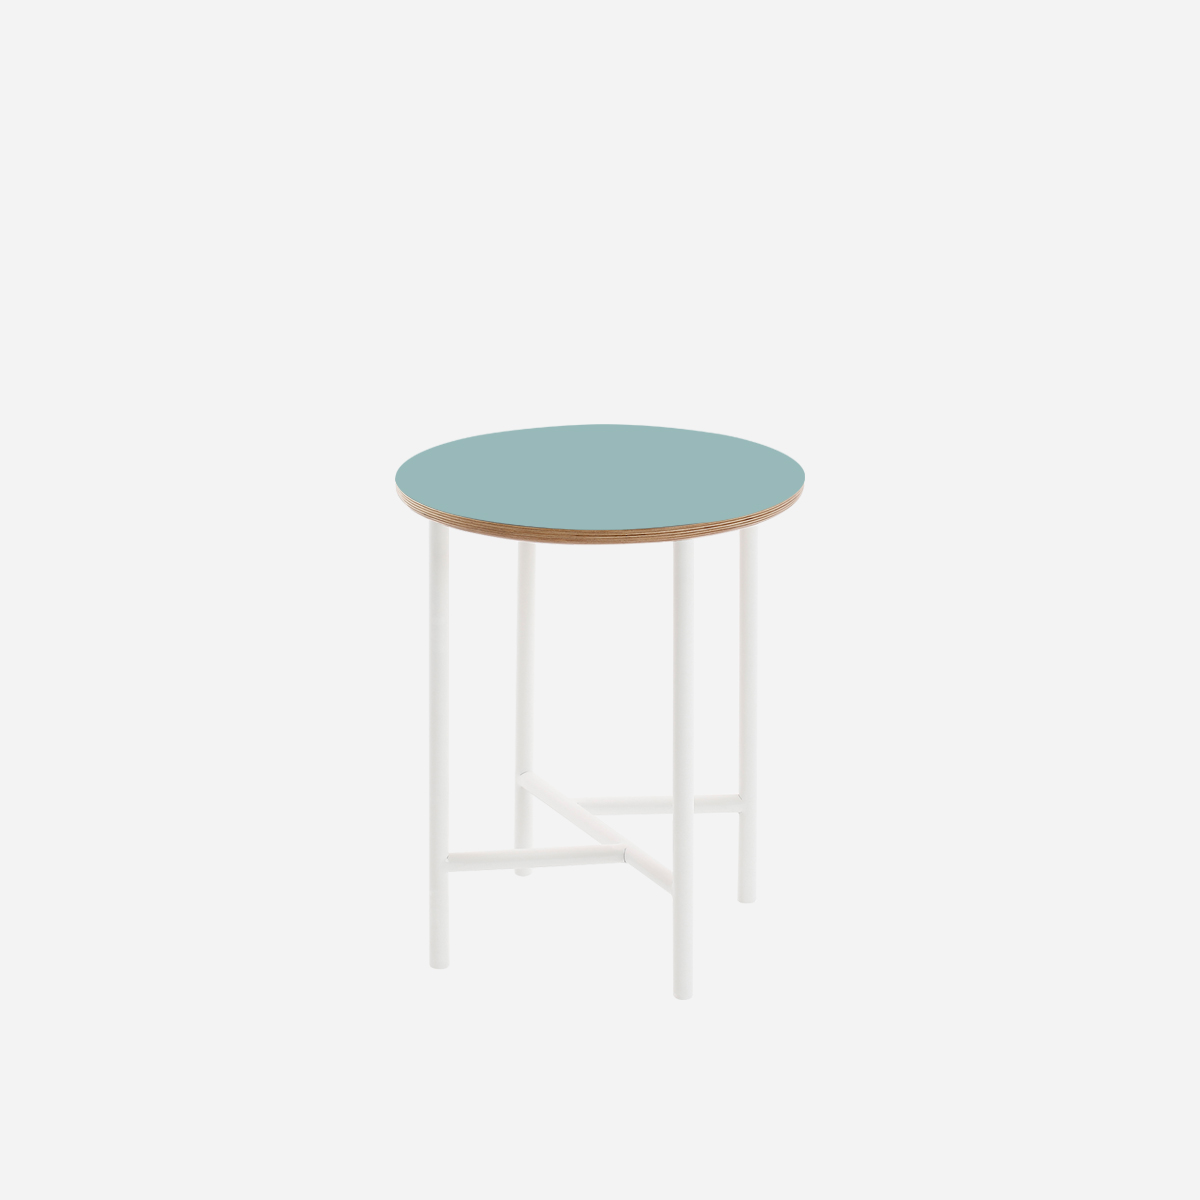 Lino cross low table